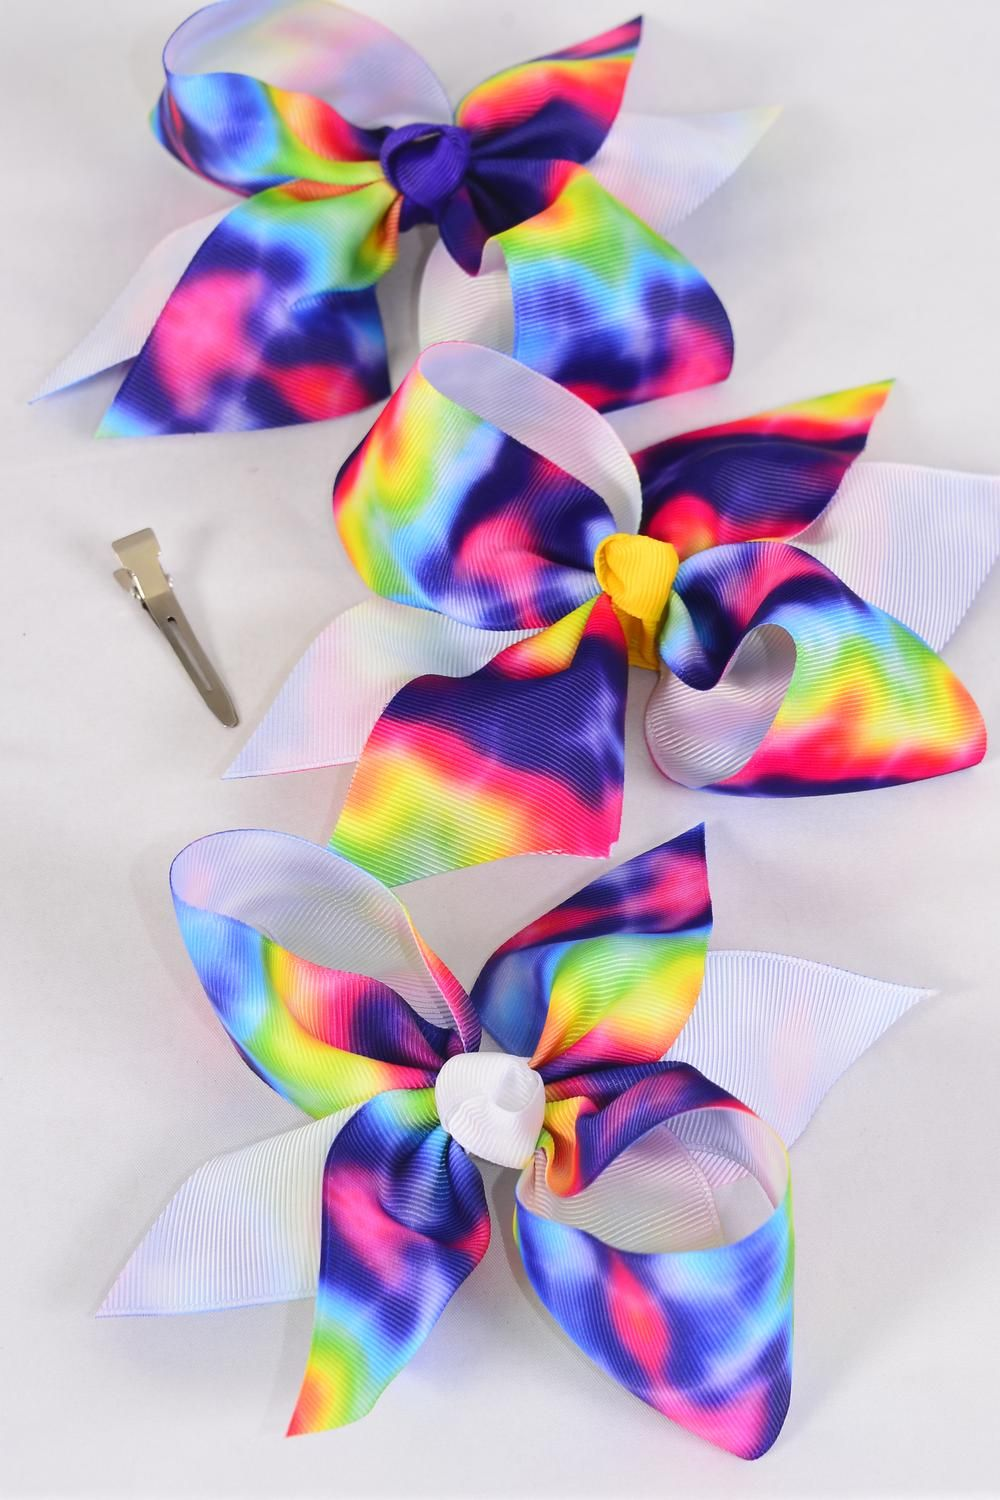 "Hair Bow Jumbo Tiedye Grosgrain Bow-tie/DZ **Alligator Clip** Size-6""x 6"" Wide,2 Fuchsia,2 Blue,2 Yellow,2 Purple,2 White,1 Lime,1 Orange,7 color mix,W Clip Strip & UPC Code"